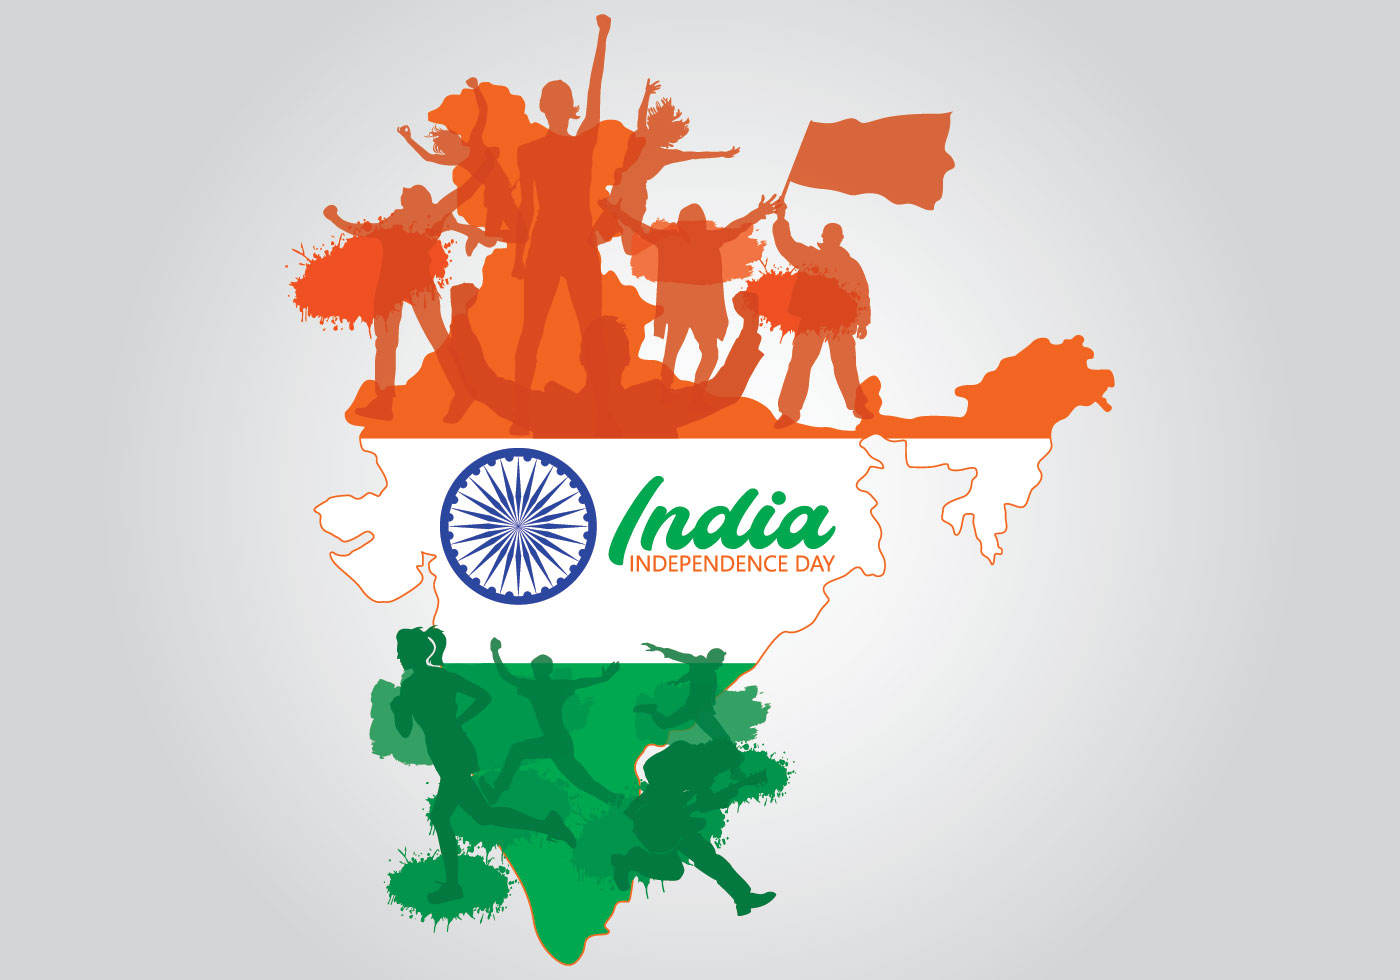 india-map-with-silhouettes-of-people-for-indian-independence-day